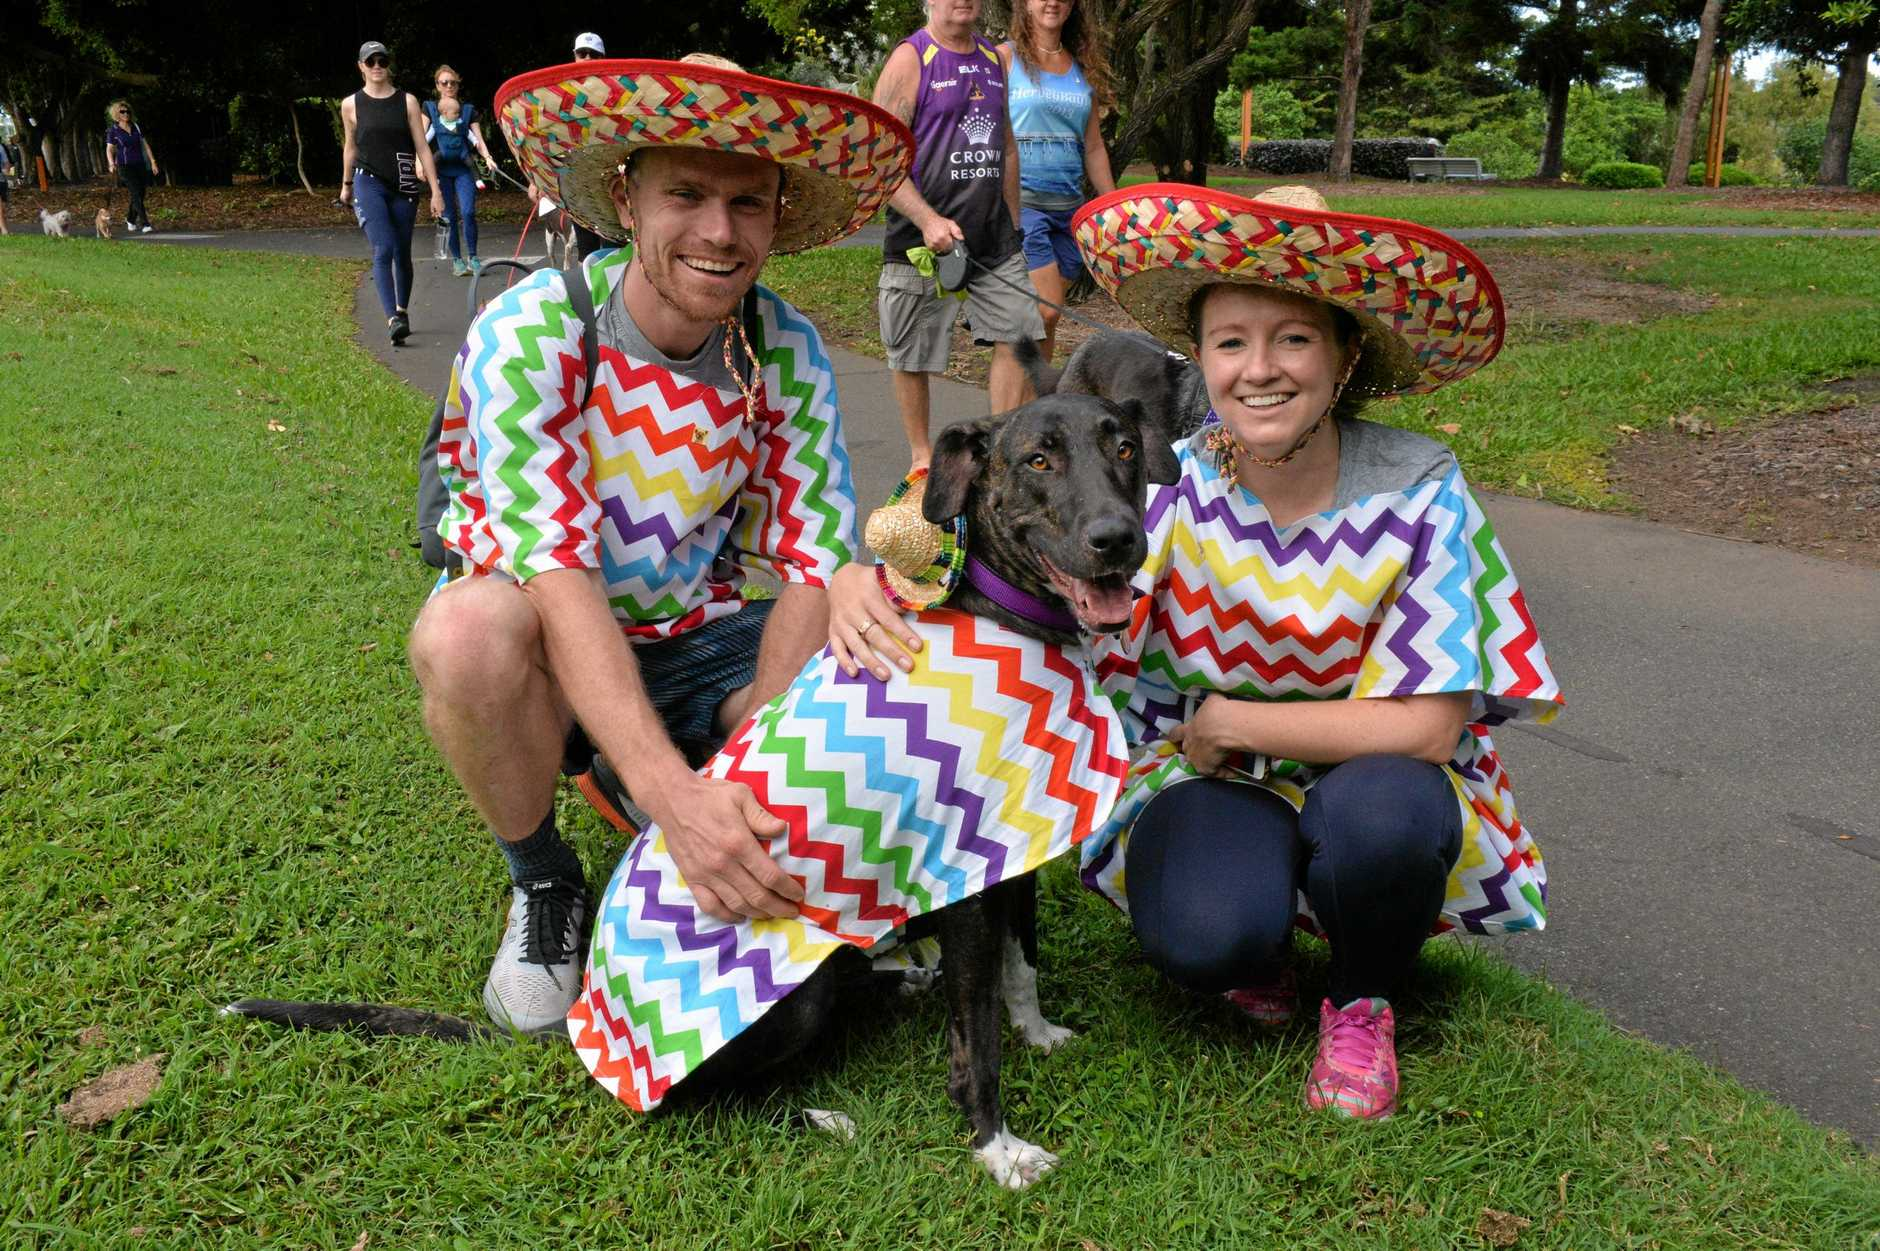 John Eddie, Jenna Eddy and their dog Pepper dressed in ponchos and sombreros for the Million Paws Walk on Sunday. Ms Eddy said the costumes were